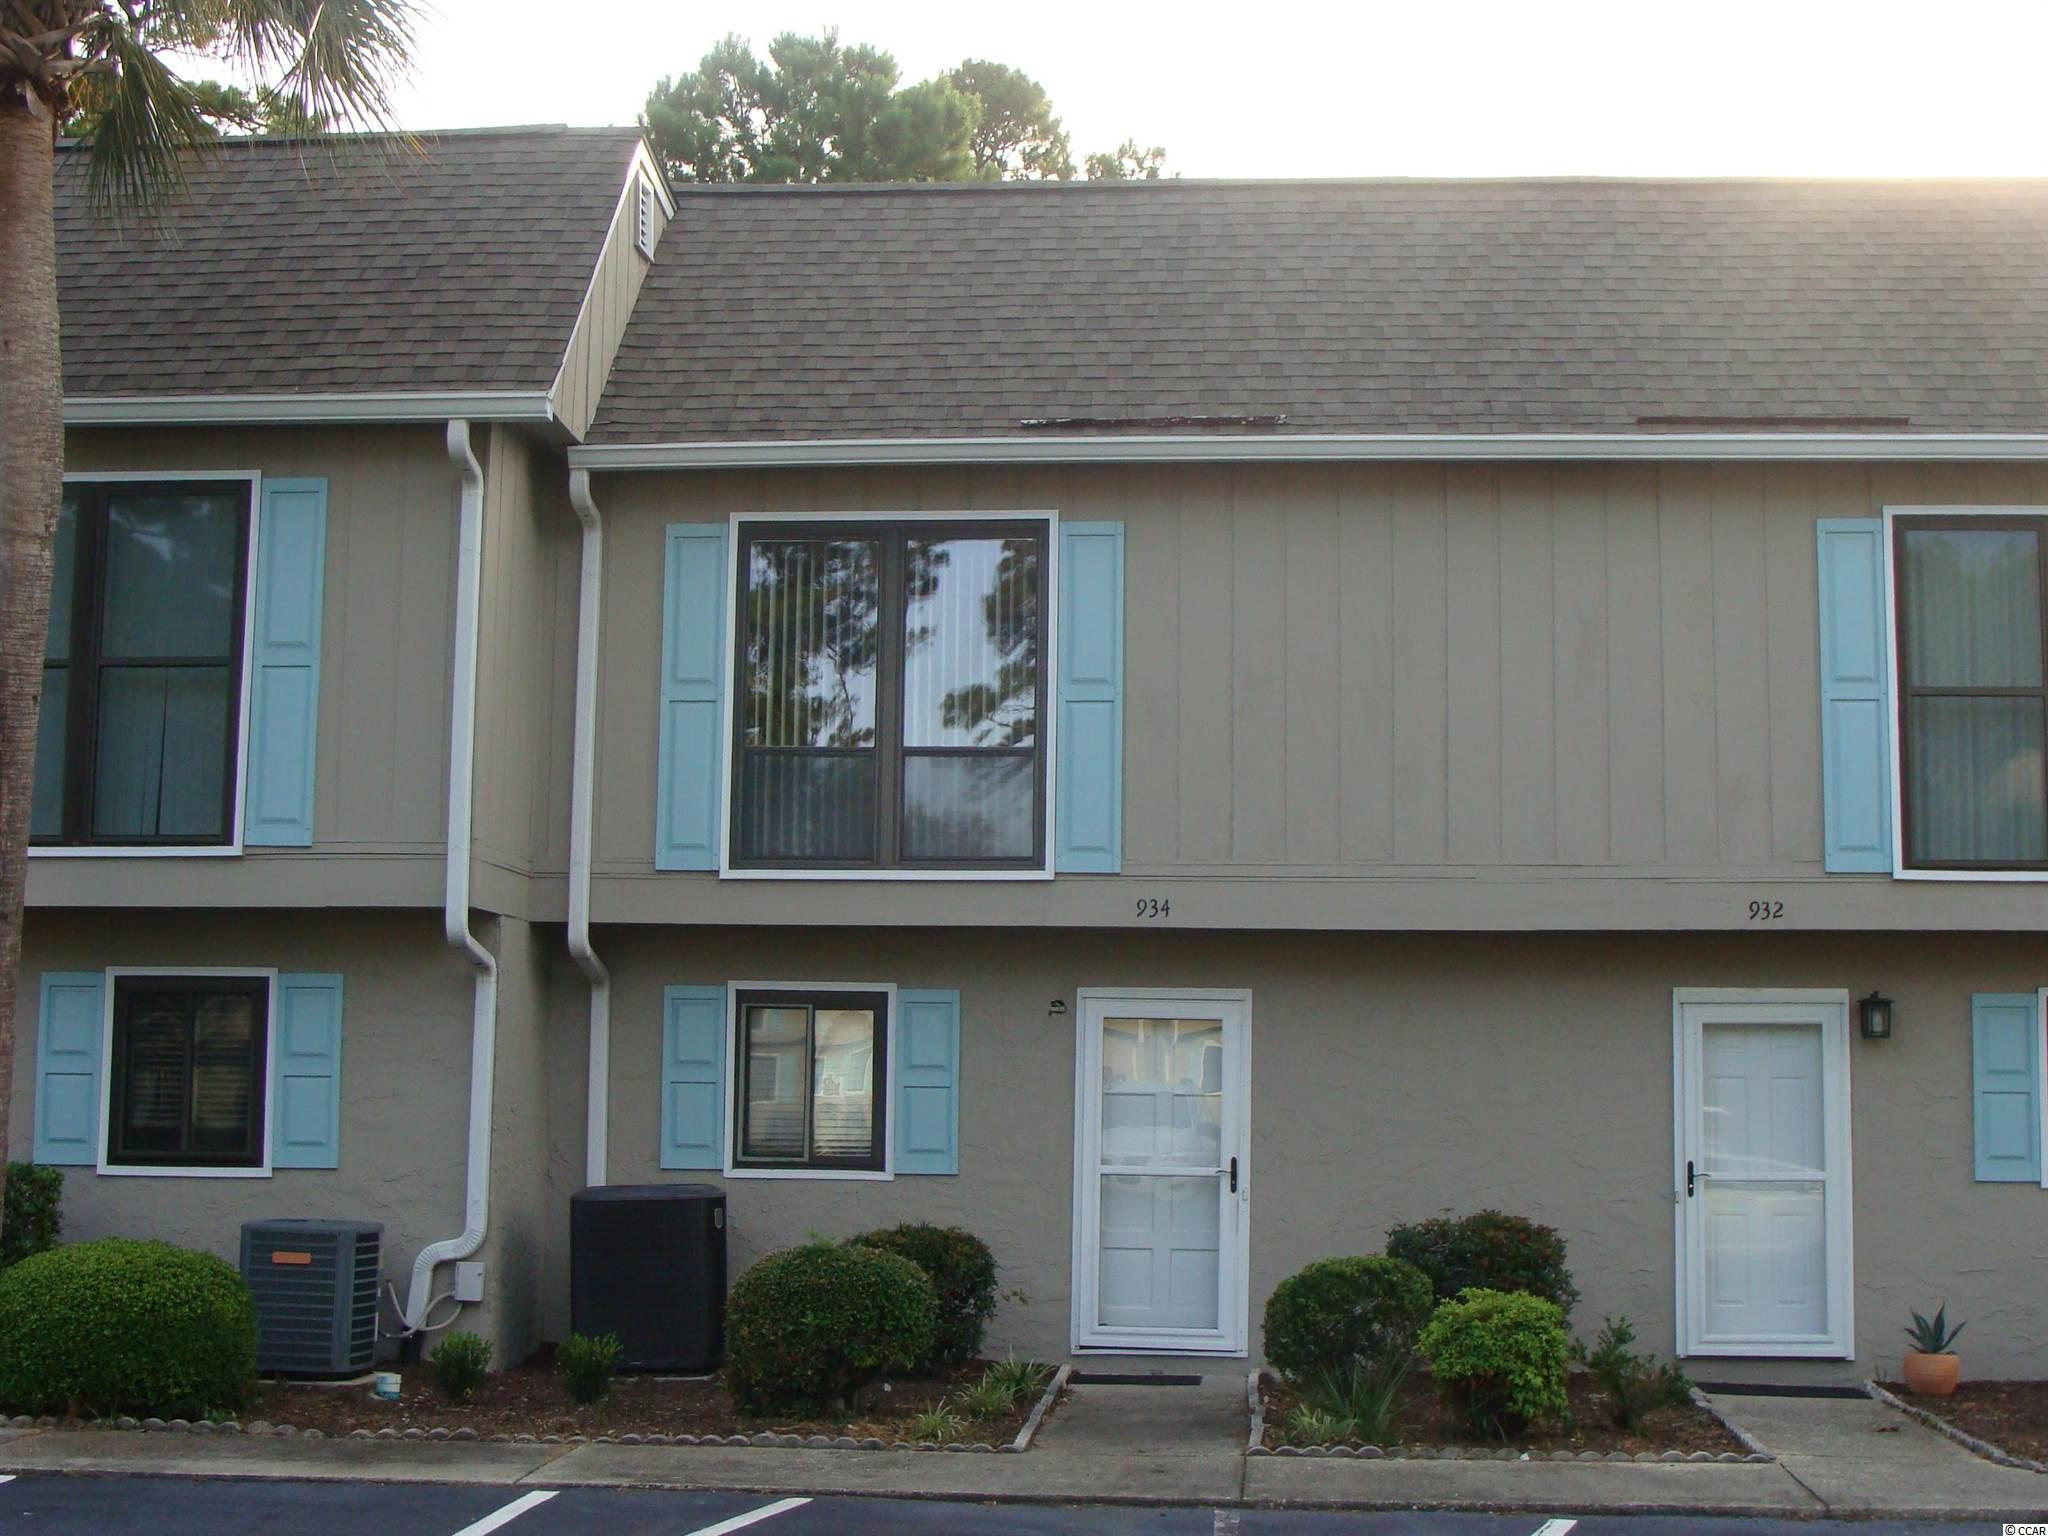 Great 2 Bedroom 2 1/2 Bath Townhouse in Robbers Roost.  Short walk or drive to the Ocean just down the end of 11th Ave. N. Convenient to shopping, restaurants and all the Myrtle Beach attractions.  Whether you're looking for a perminant or vacation home this unit is ready to move right in and make it your own.  First level kitchen, dining room, Living room, 1/2 bath, screen porch with laundry / storage closet.  Second level has 2 bedrooms each with 2 double closets and it's own bath. Robbers Roost offers it's property owns an outside pool, tennis court and Clubhouse with meeting room and bathrooms.  This area has limited golf car parking, there is a waiting list with no availability at this time.